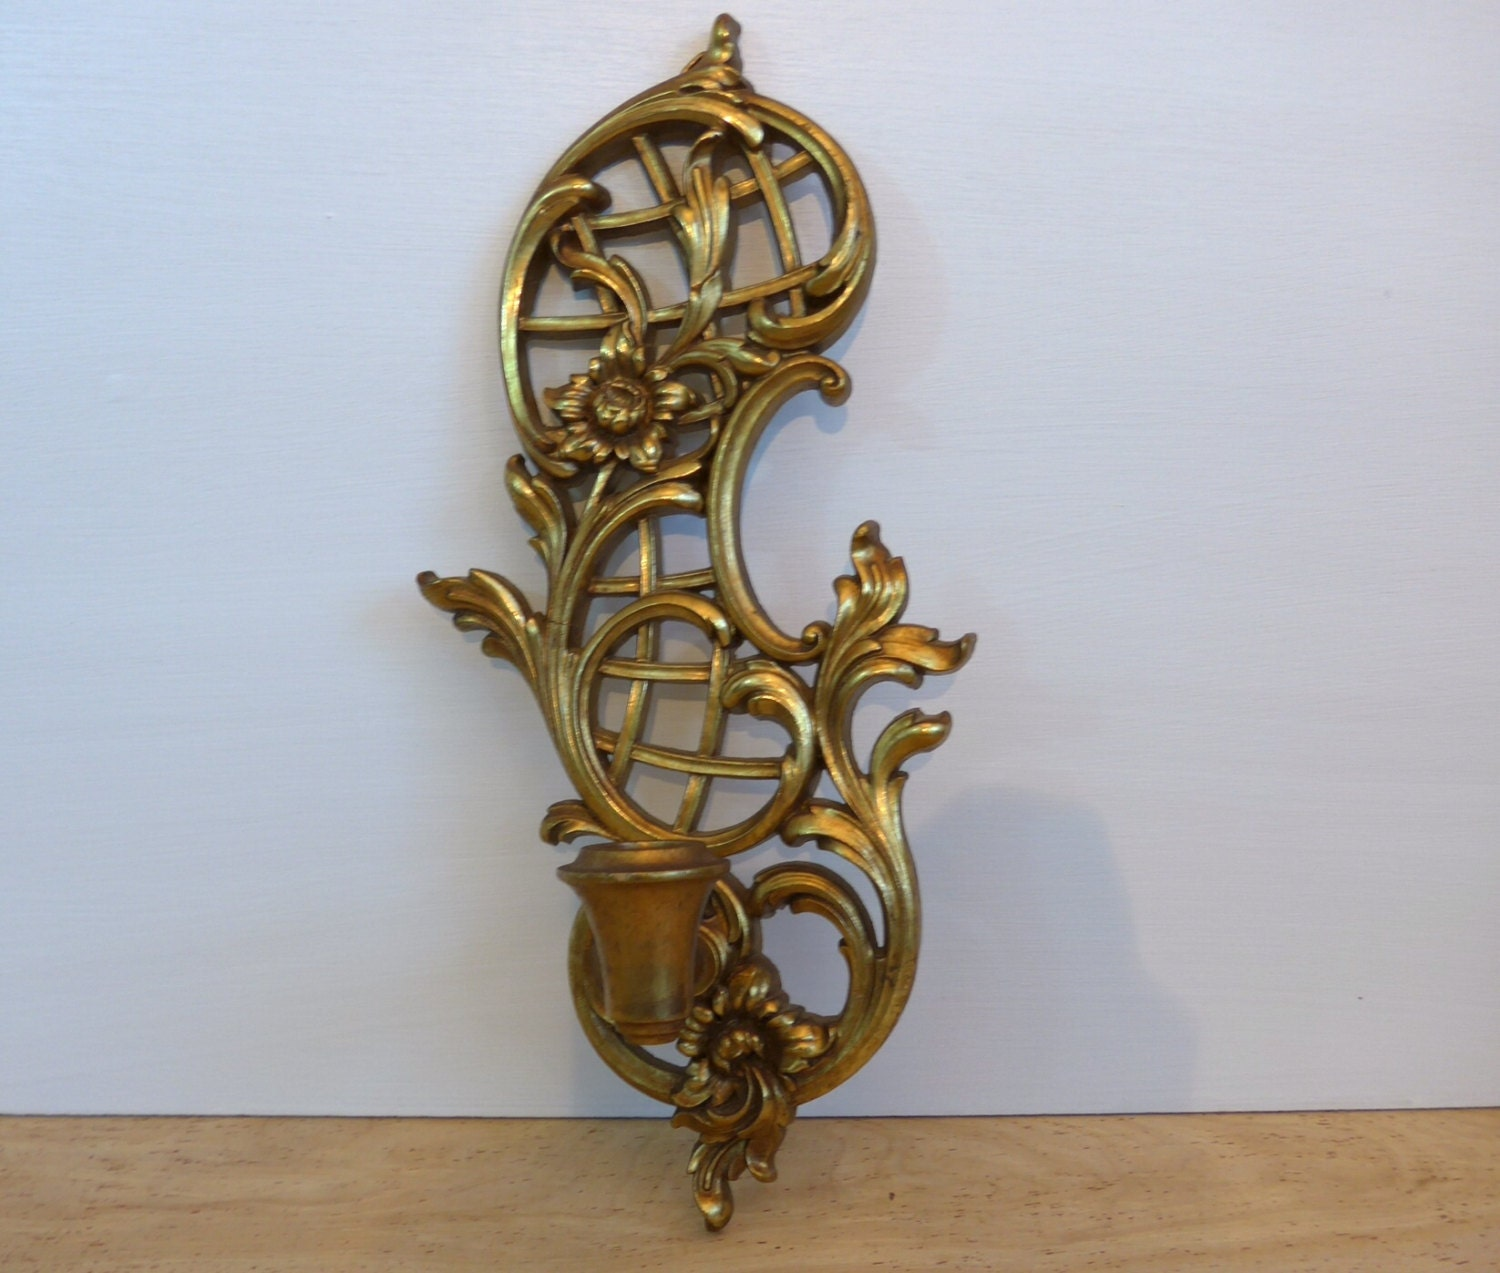 Vintage syroco gold ornate candlestick sconce hollywood for Hollywood regency wall decor